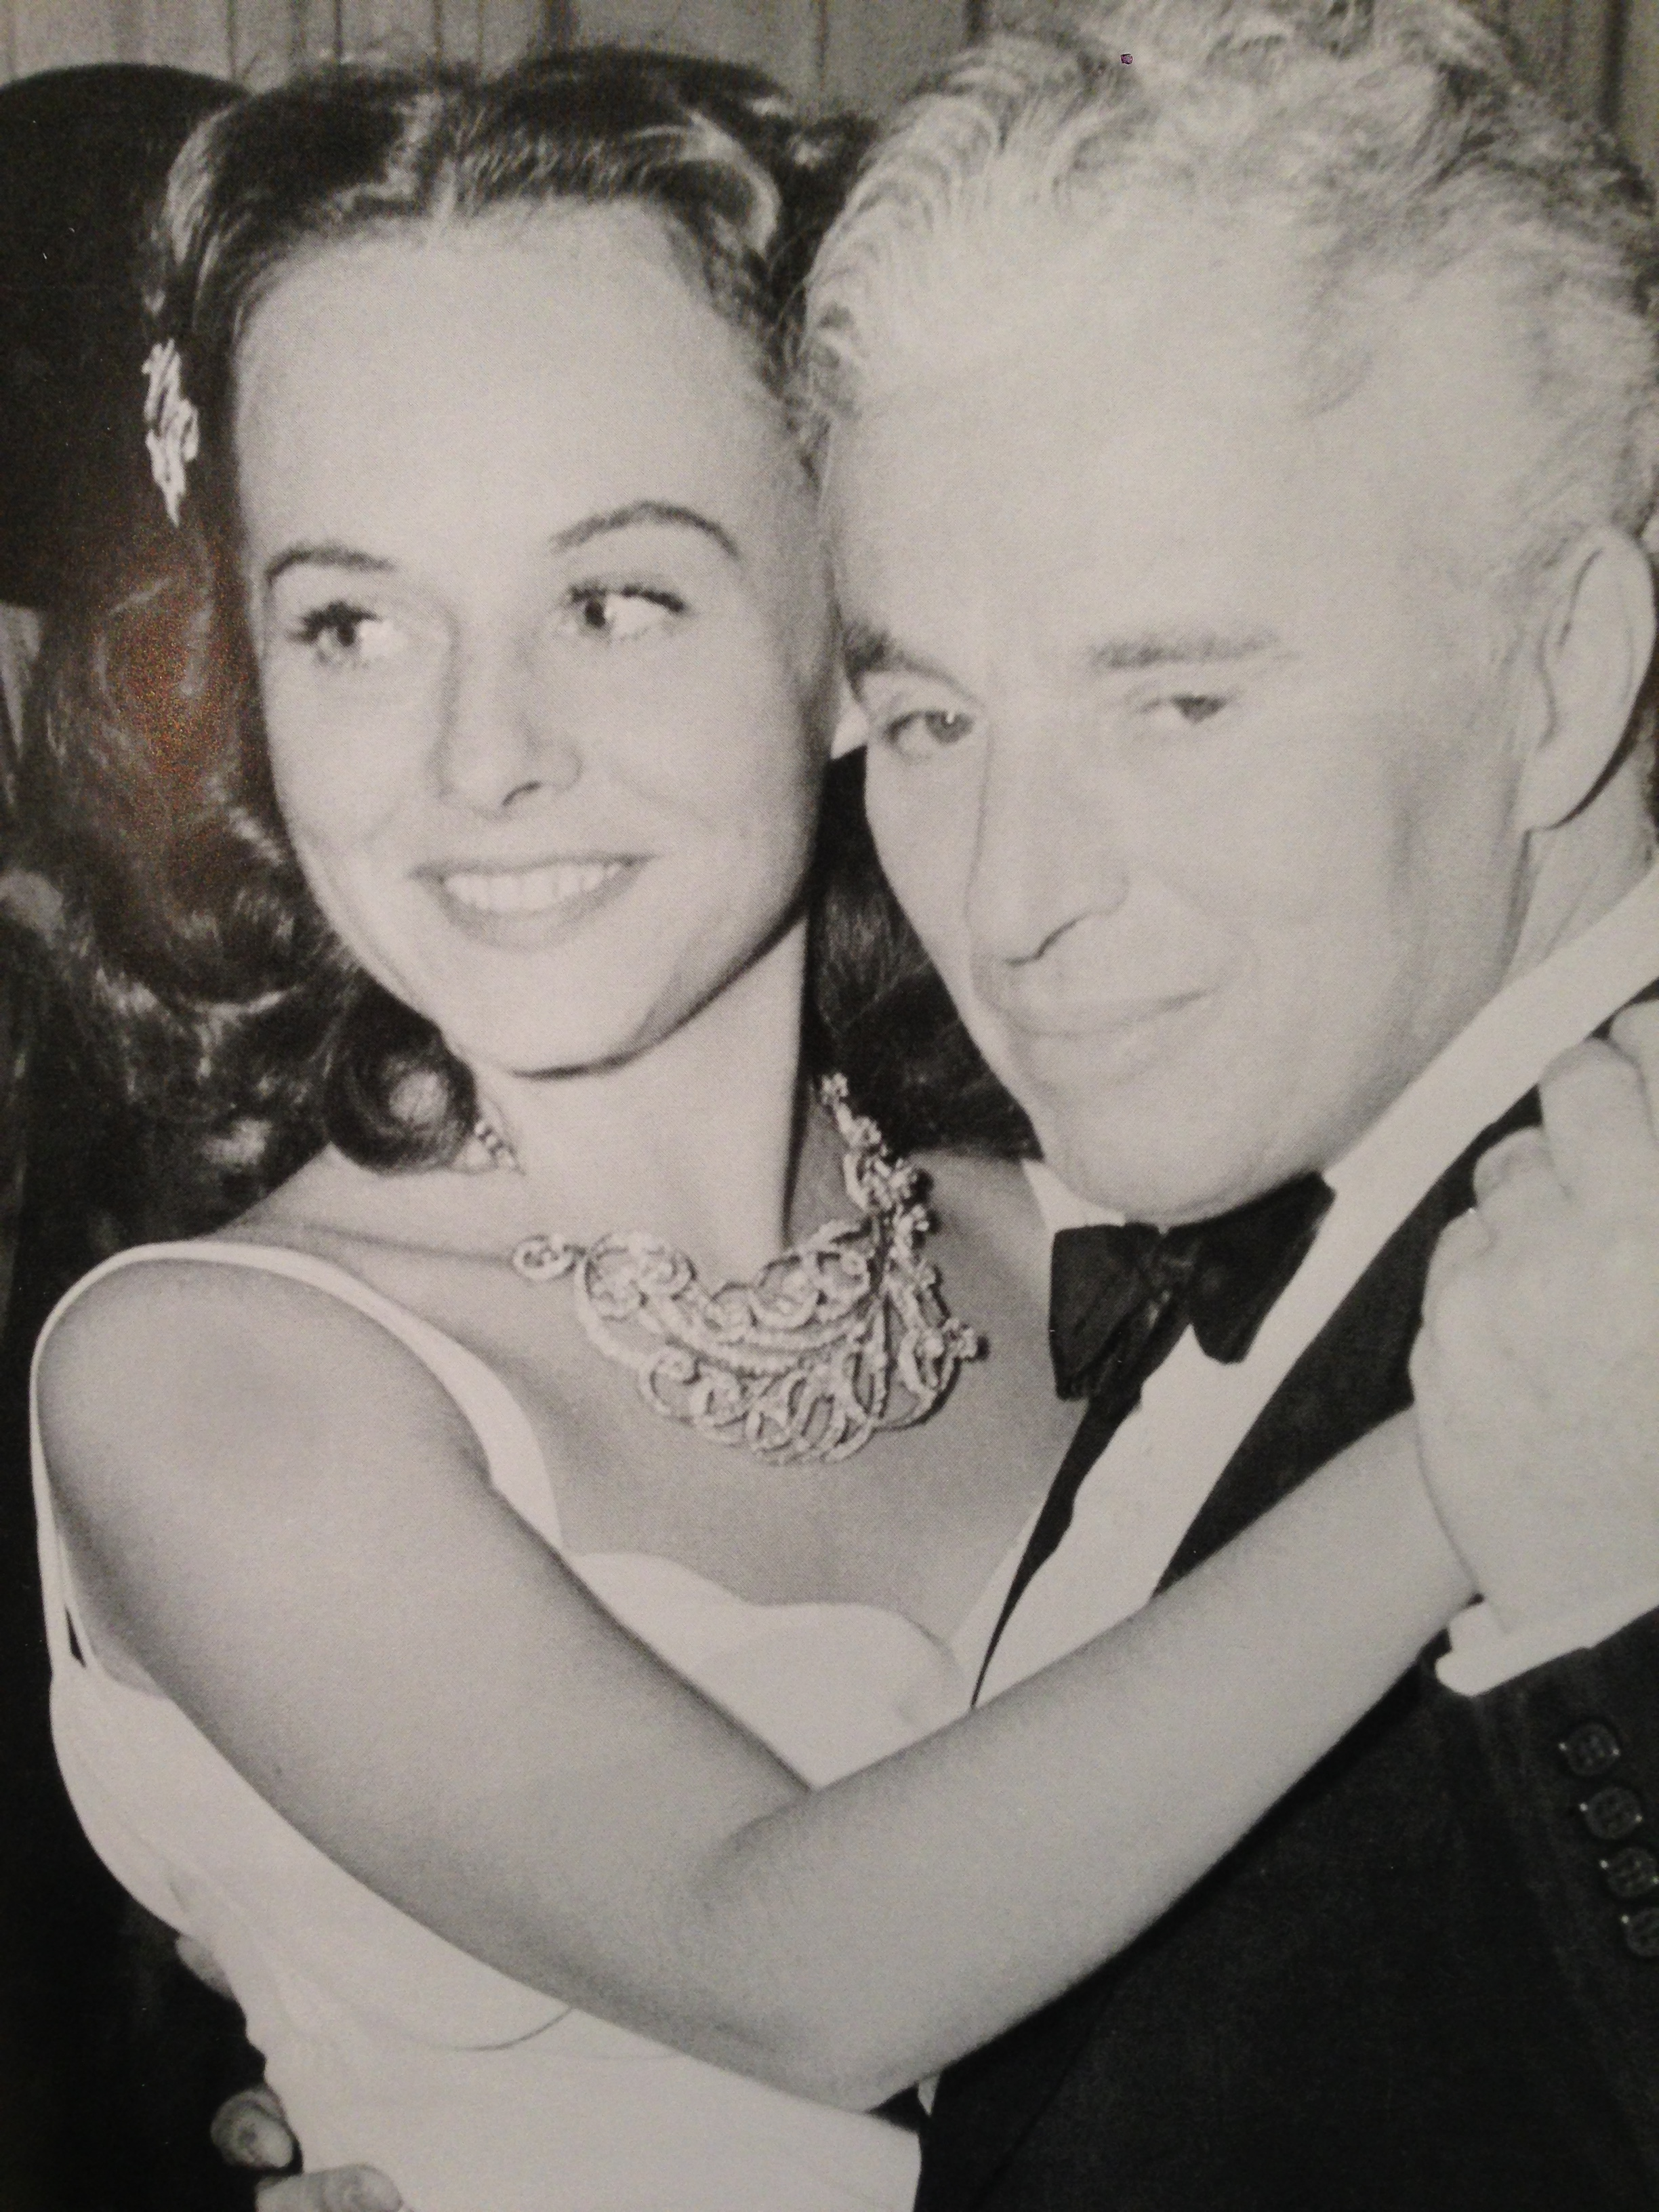 Gorgeous Paulette Goddard shown here with her husband, Charles Chaplin.  She was known for her collection of beautiful jewels.  This one is the Feather platinum necklace encrusted with diamonds.